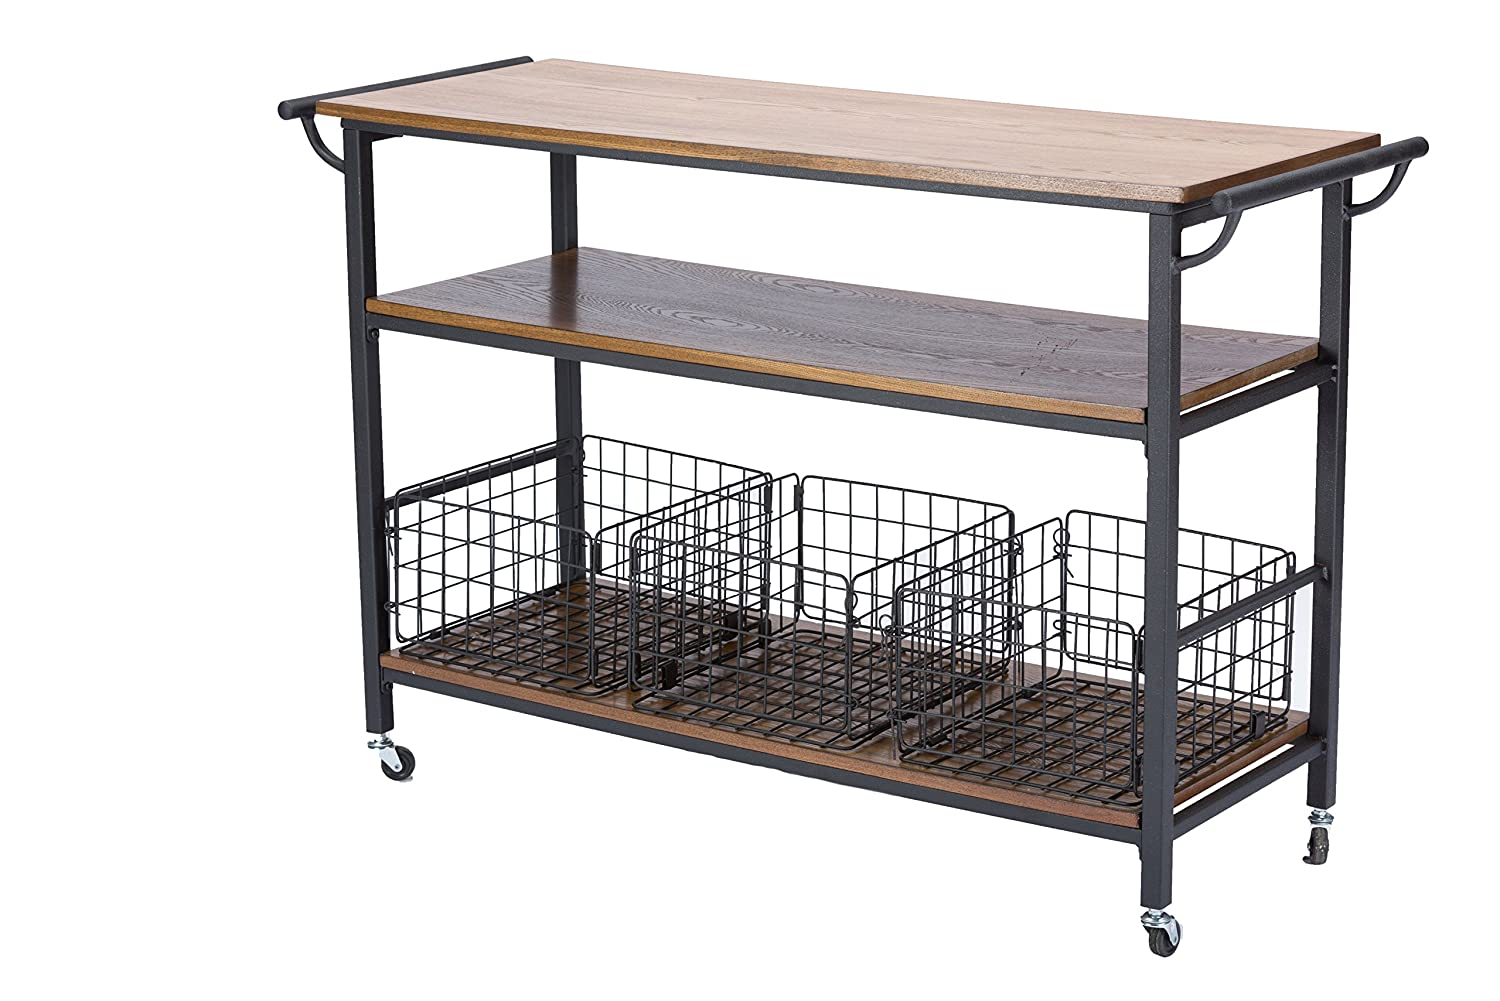 Amazon.com: Baxton Studio Lancashire Wood And Metal Kitchen Cart, Brown:  Kitchen U0026 Dining